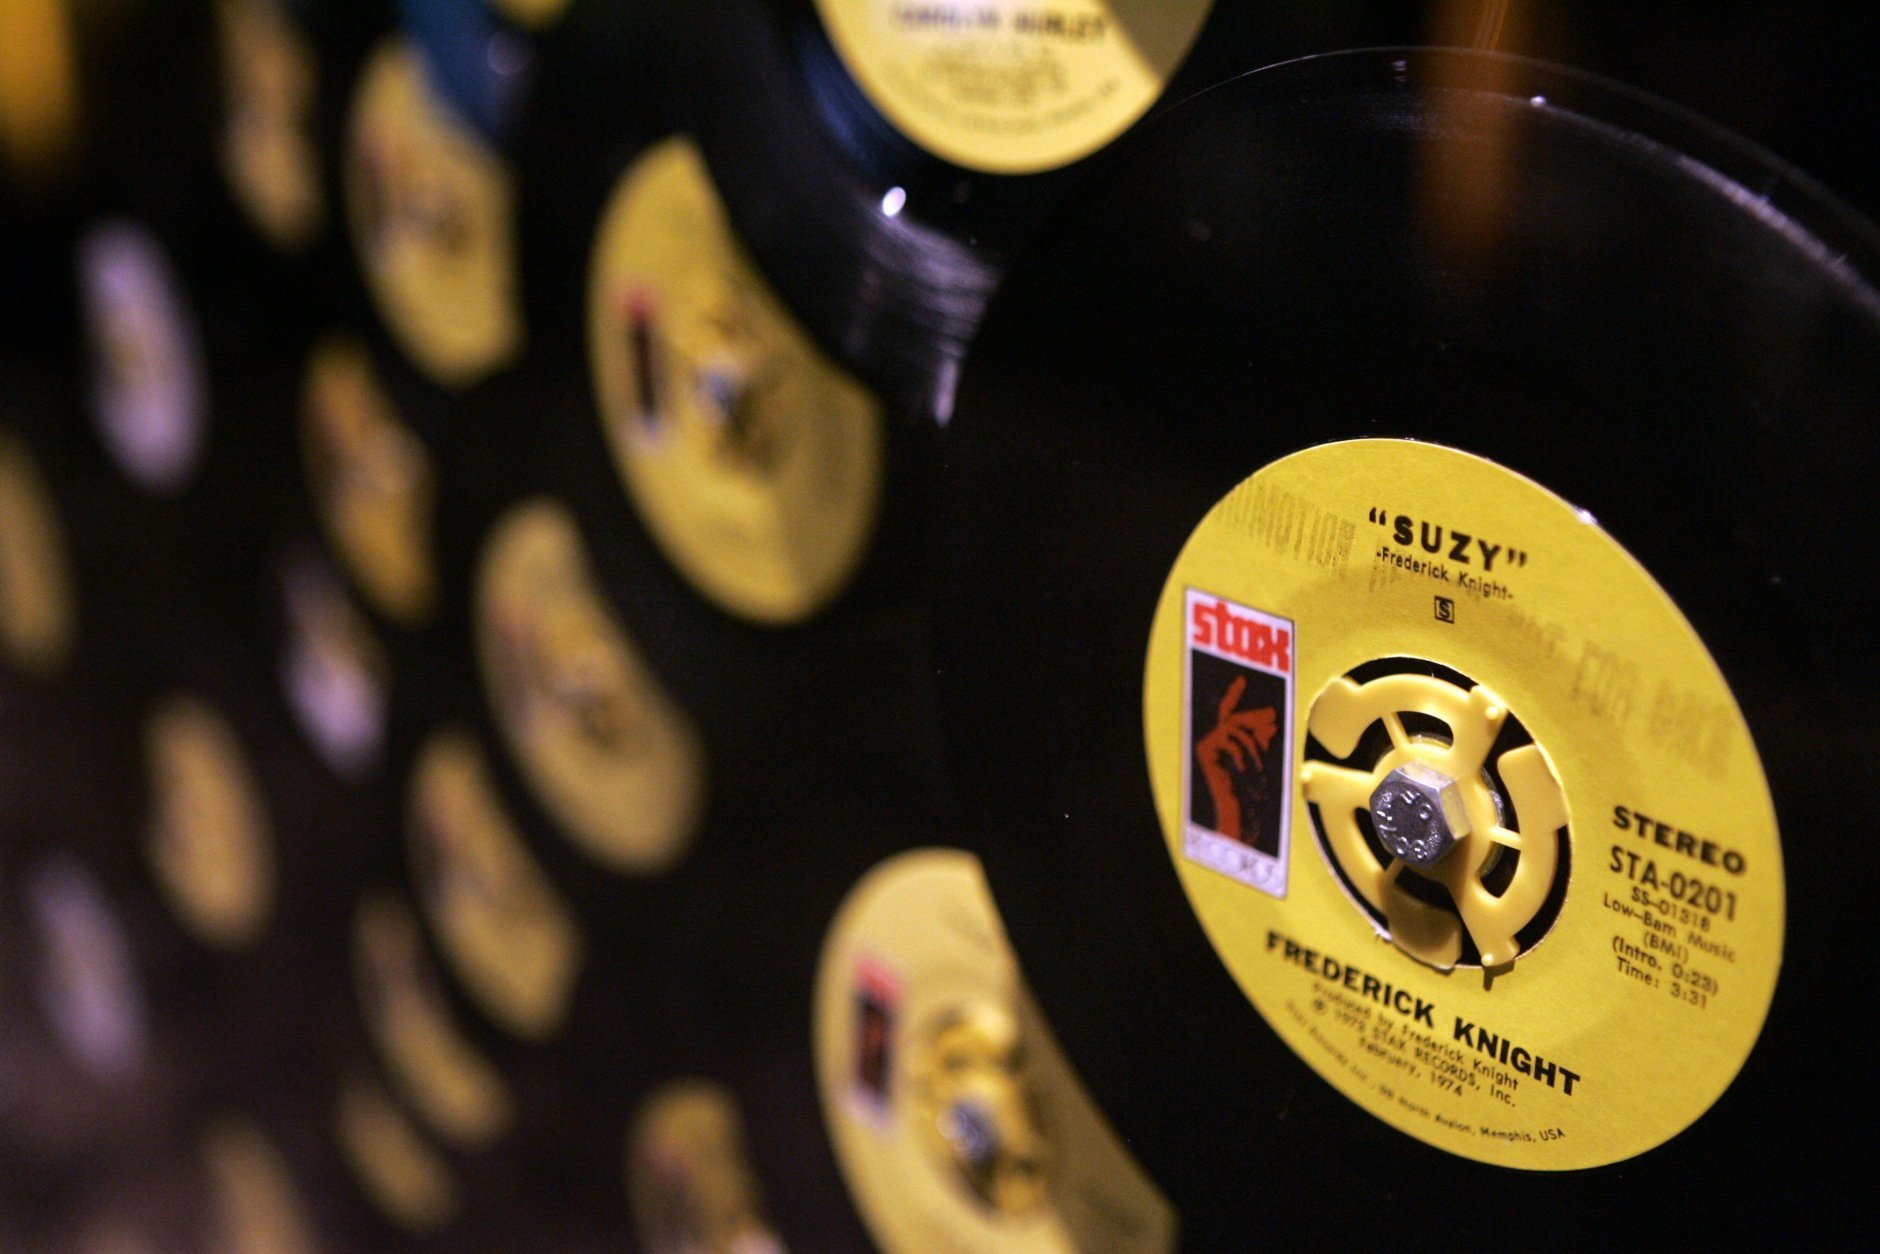 FILE - In this May 16, 2007 file photo, a display of 45 rpm records at the Stax Records museum in Memphis, Tenn. is shown. (AP Photo/Mark Humphrey, file)